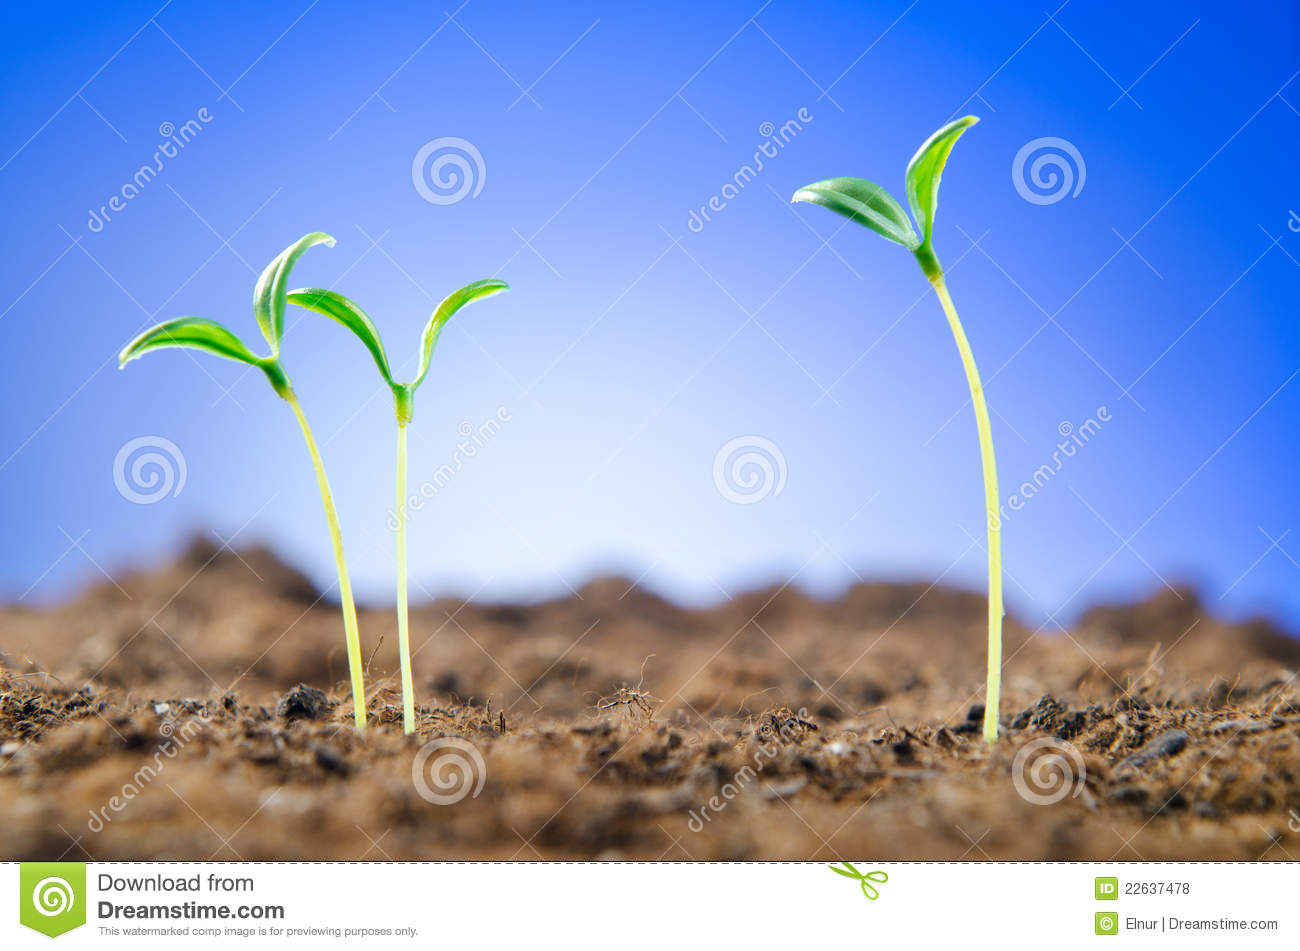 Green seedlings - new life concept